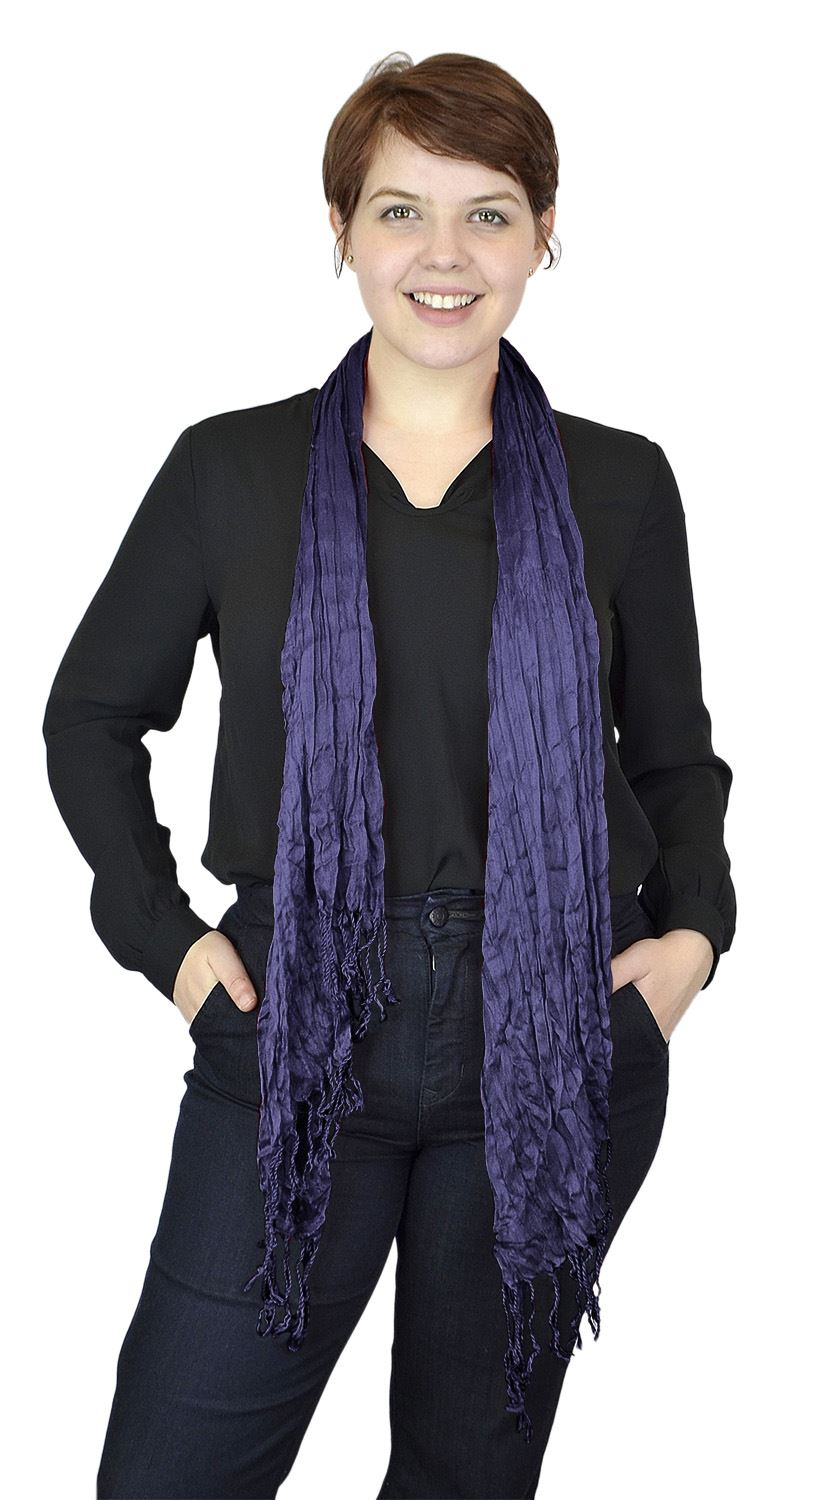 Belle Donne - Women's Fashion Scarf Pashmina stylish Crinkle Scarves - Plum Purple